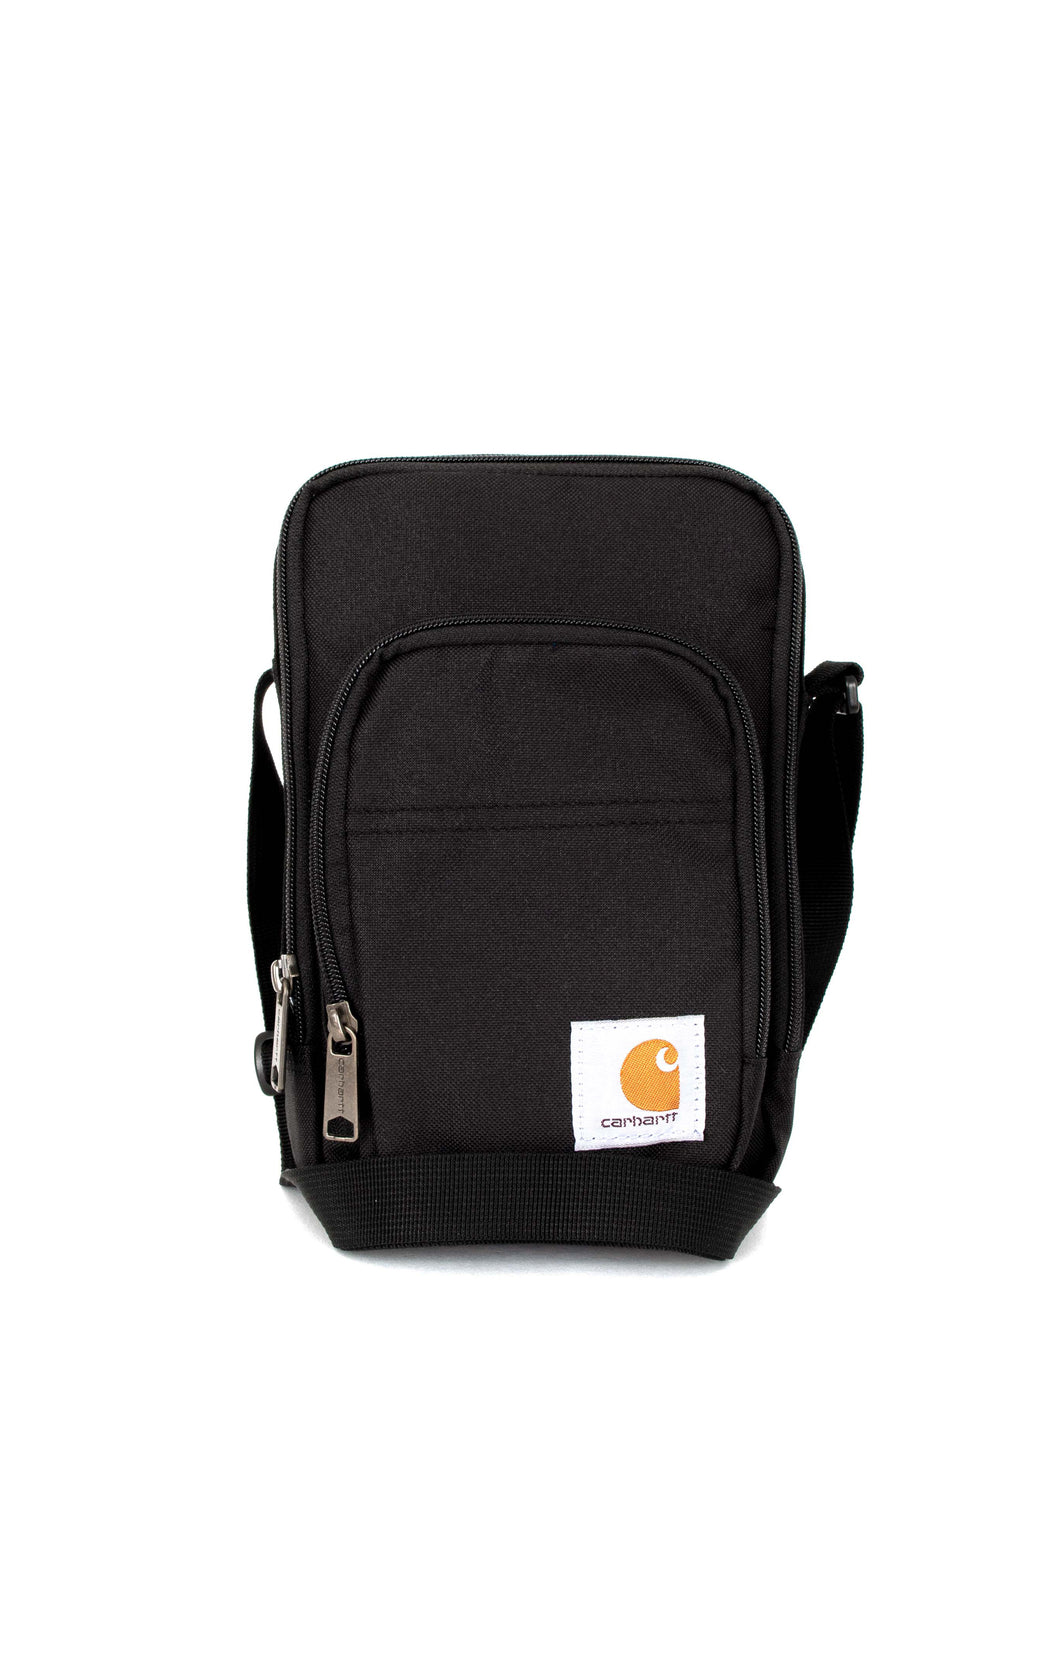 Carhartt Legacy Cross Body bag (Black)